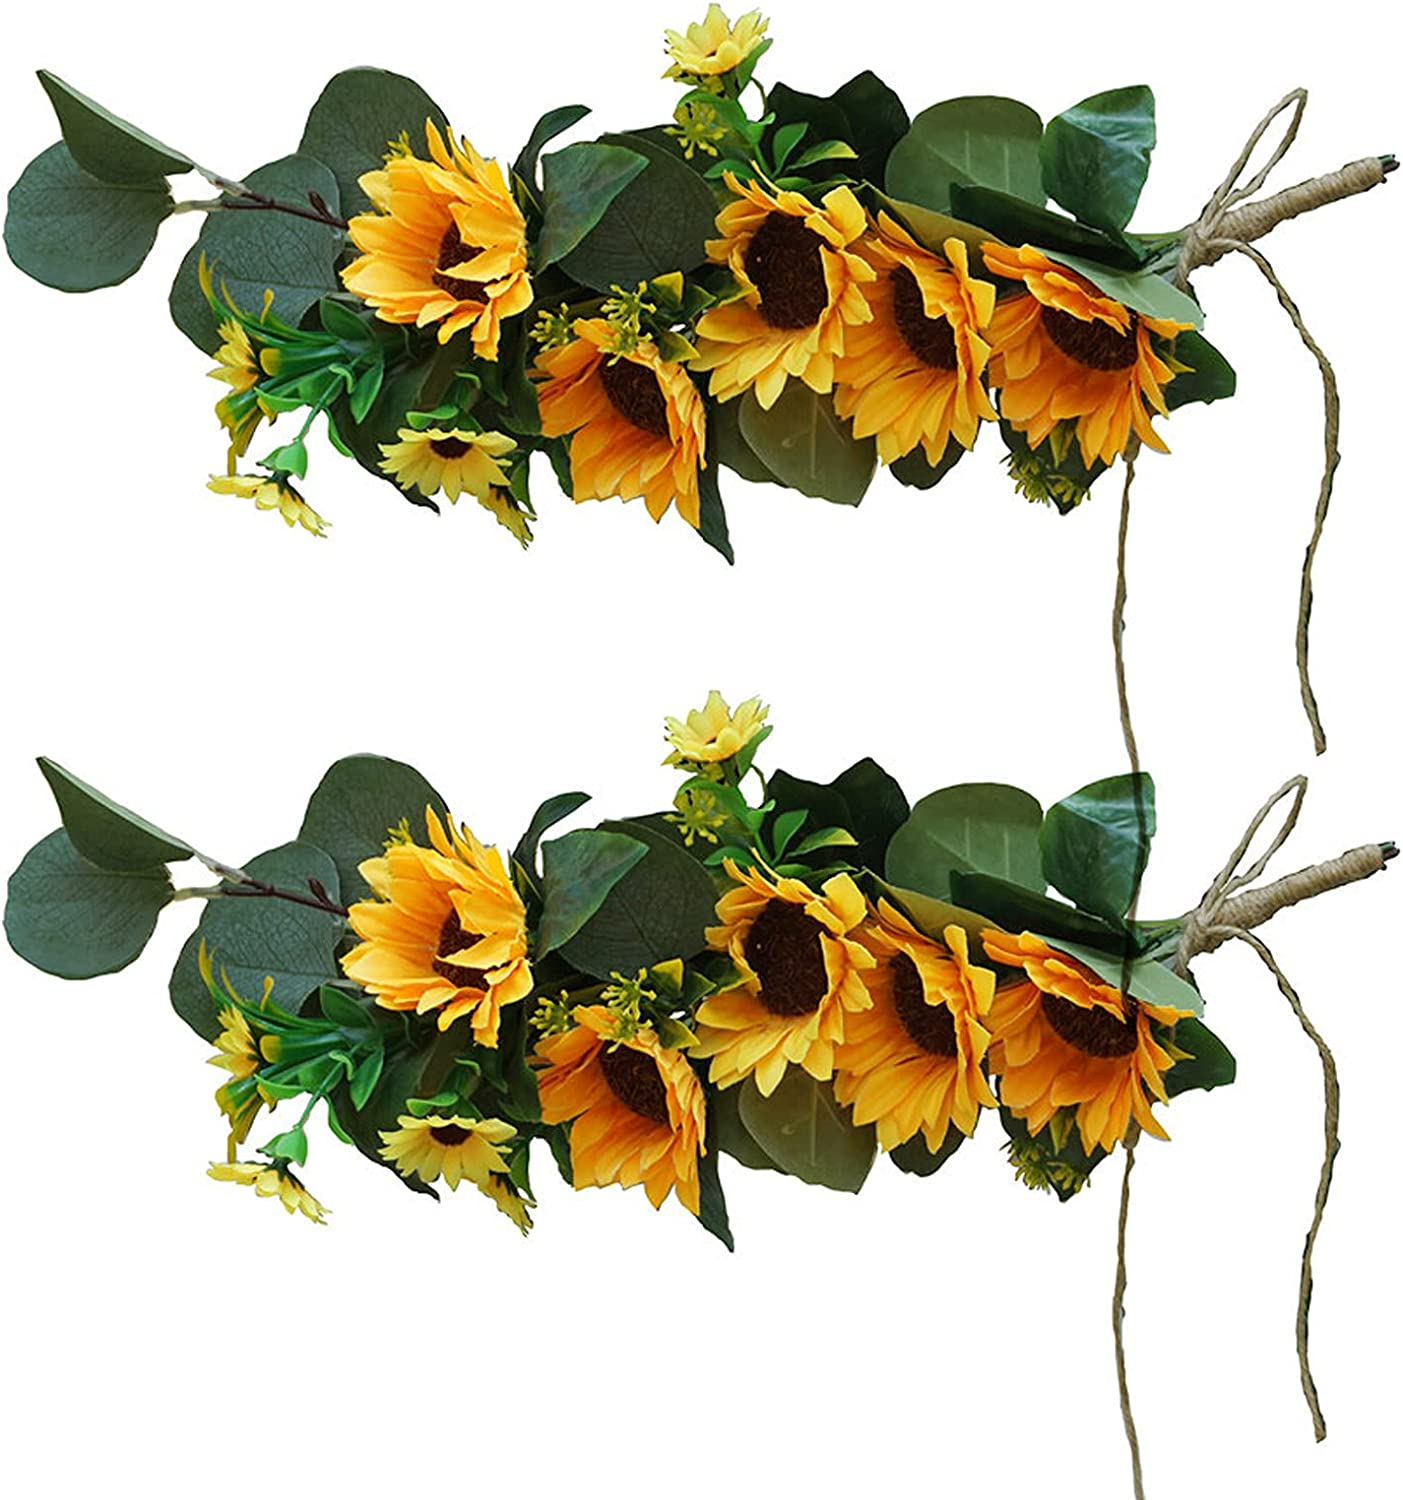 Limited price sale Juoyyo Artificial Flower Swag Simulation Sunflower Wreath Hangin Raleigh Mall